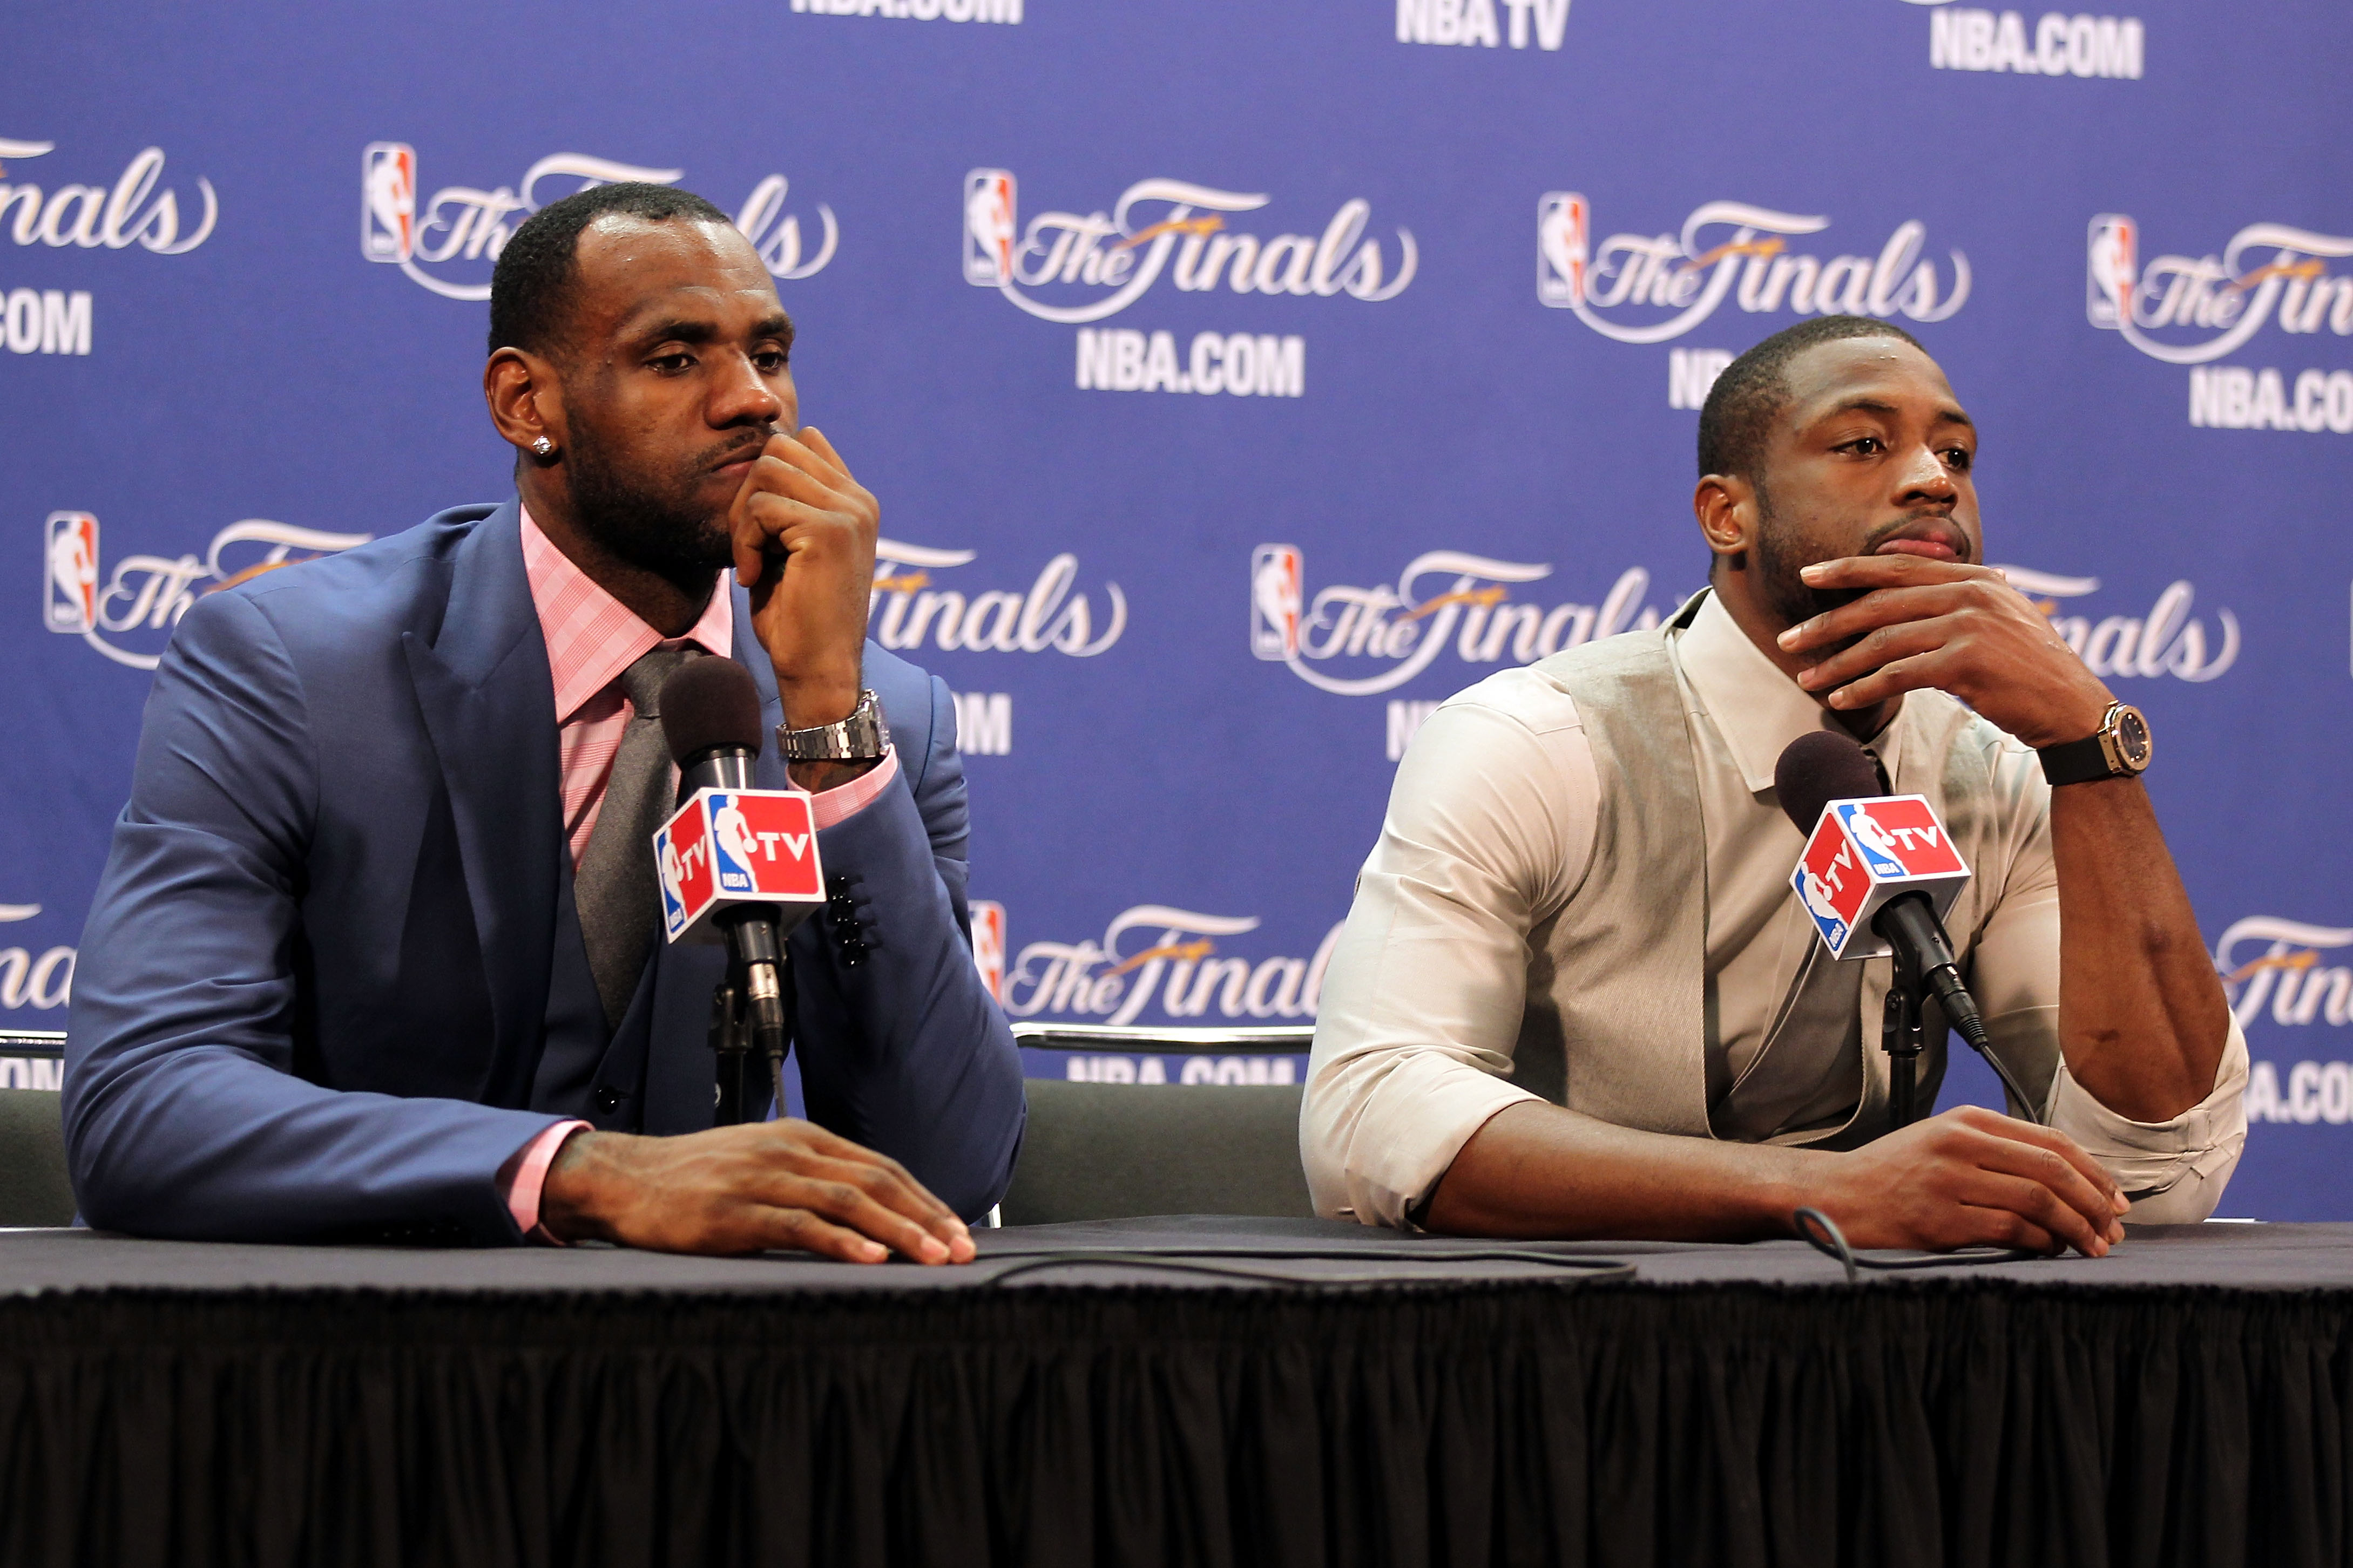 MIAMI, FL - JUNE 12:  (L-R) LeBron James #6 and Dwyane Wade #3 of the Miami Heat answer questions from the media at a post game news conference after the Dallas Mavericks won 105-95 in Game Six of the 2011 NBA Finals at American Airlines Arena on June 12,